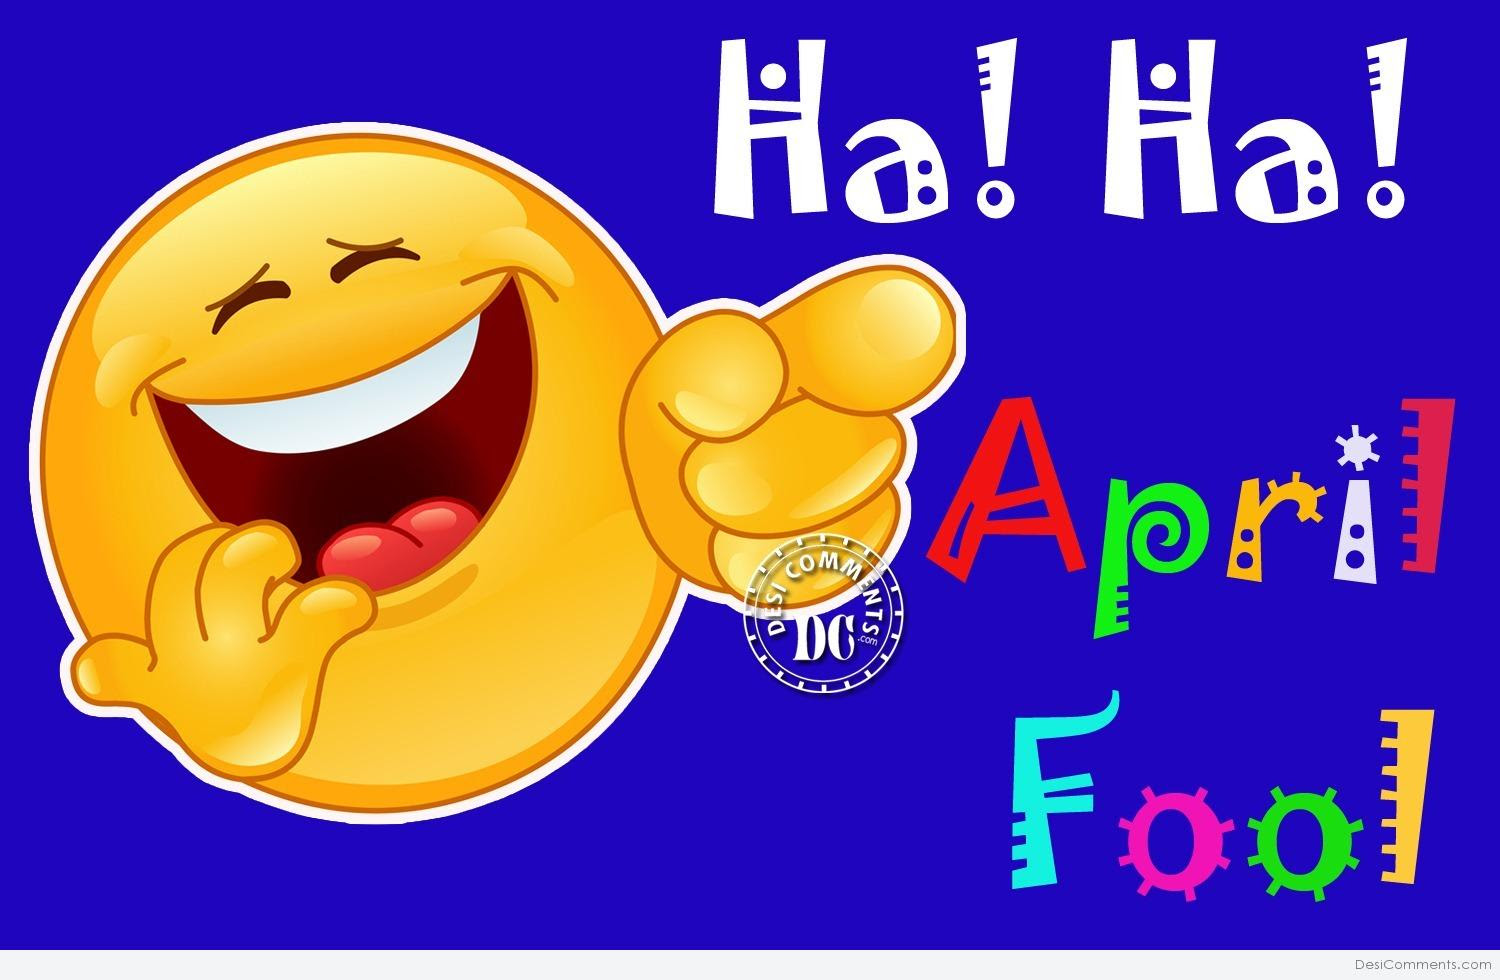 April Fool\u2019s Day Pictures, Images, Graphics for Facebook, Whatsapp  Page 2